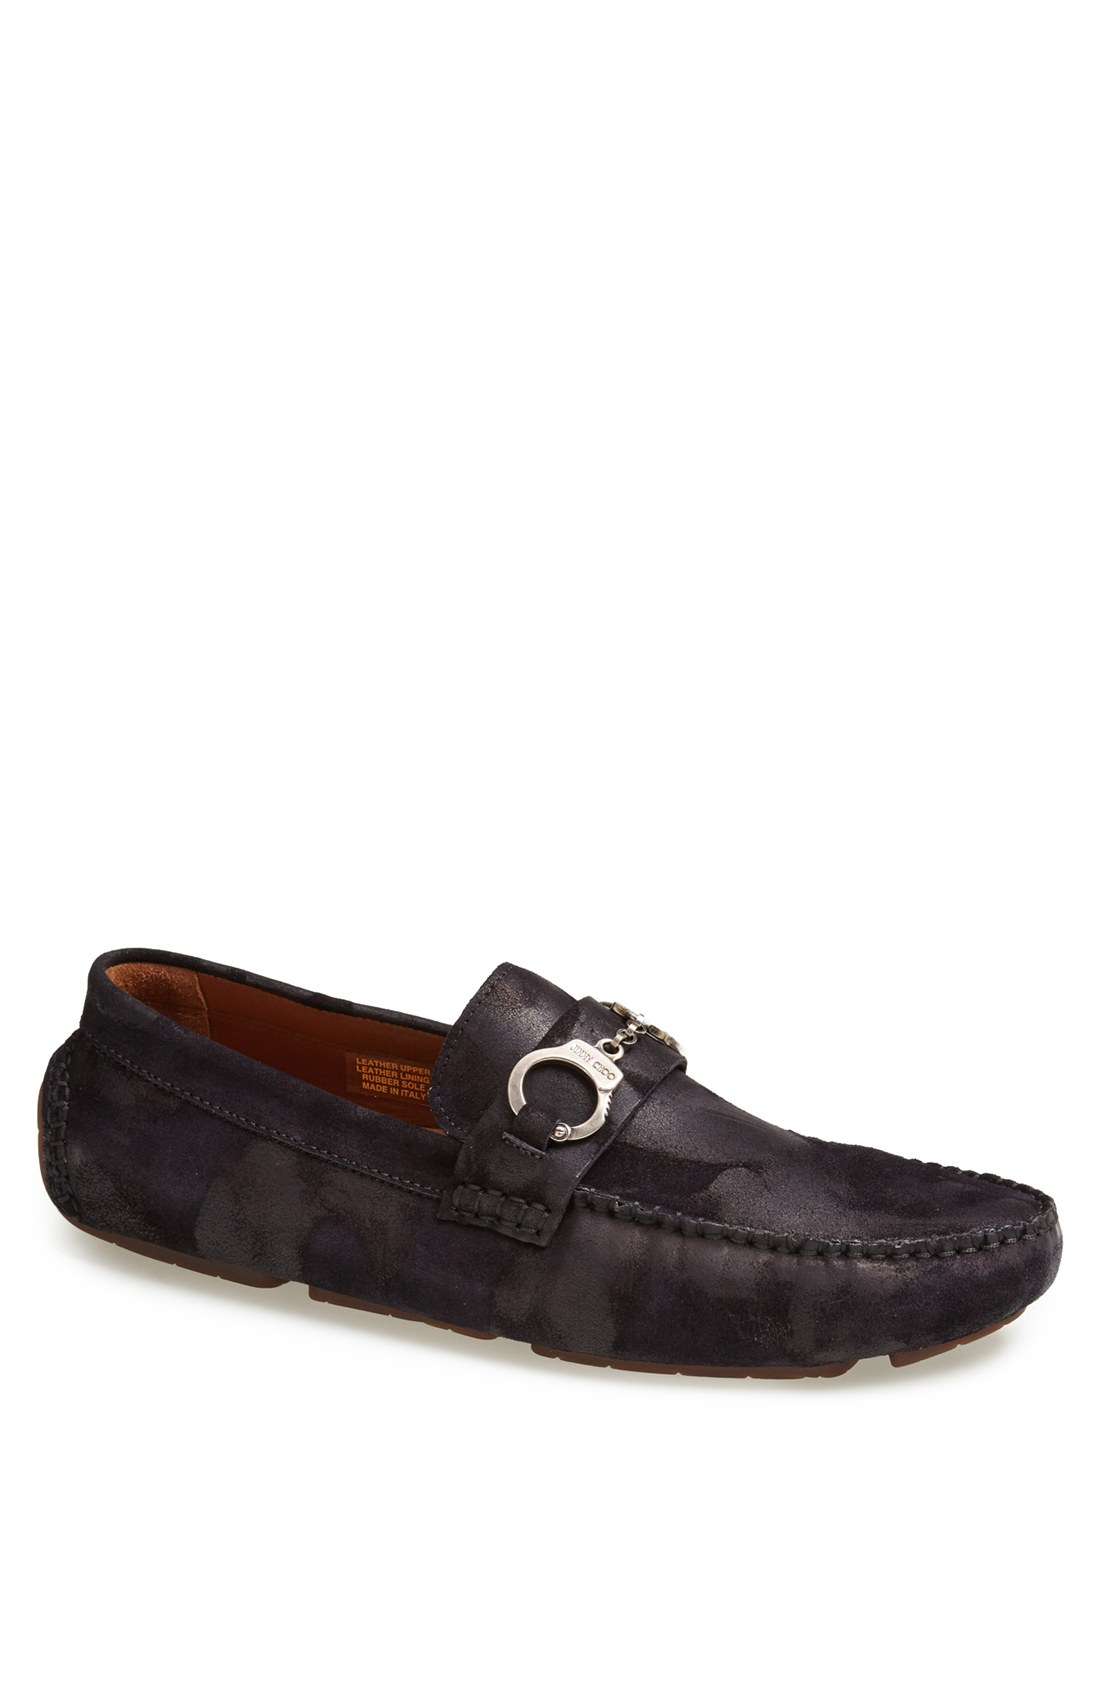 Jimmy Choo Casual Shoes For Men